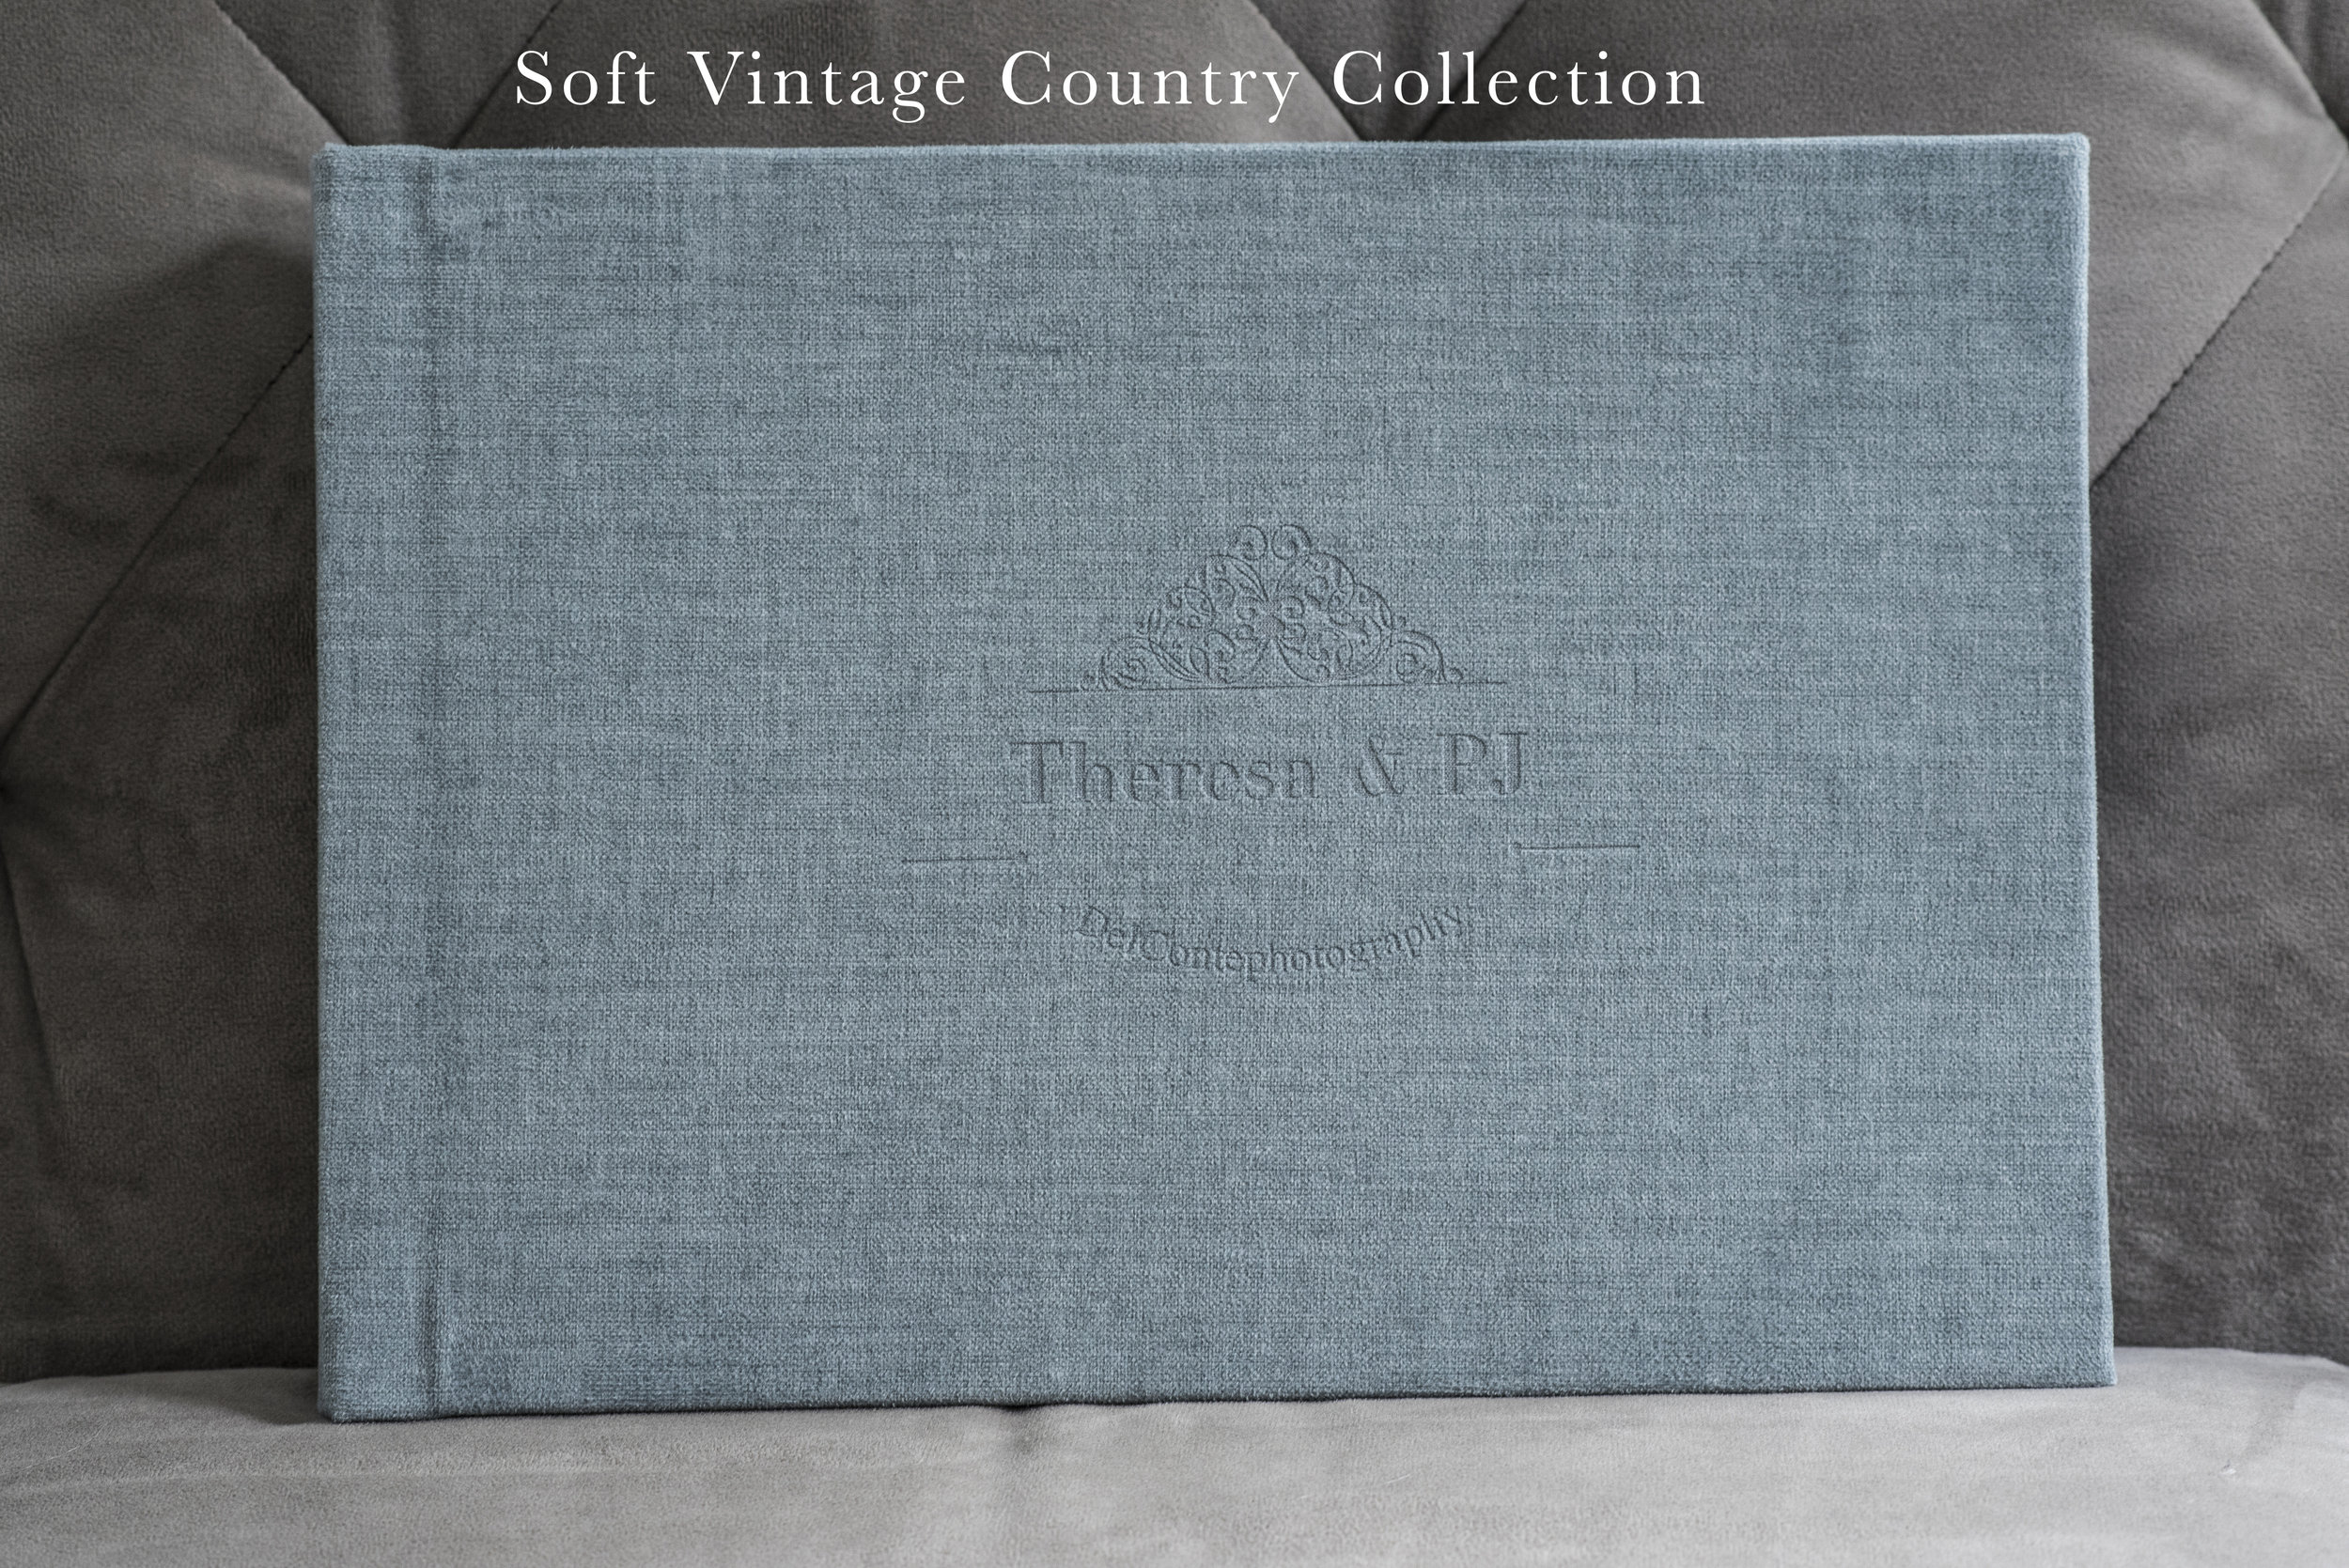 The Country chic collection is in a velvety, lazer engraved, long lasting fabric.Colors are soft and lovely and work well with engagements, family albums, casual wedding, country affairs.